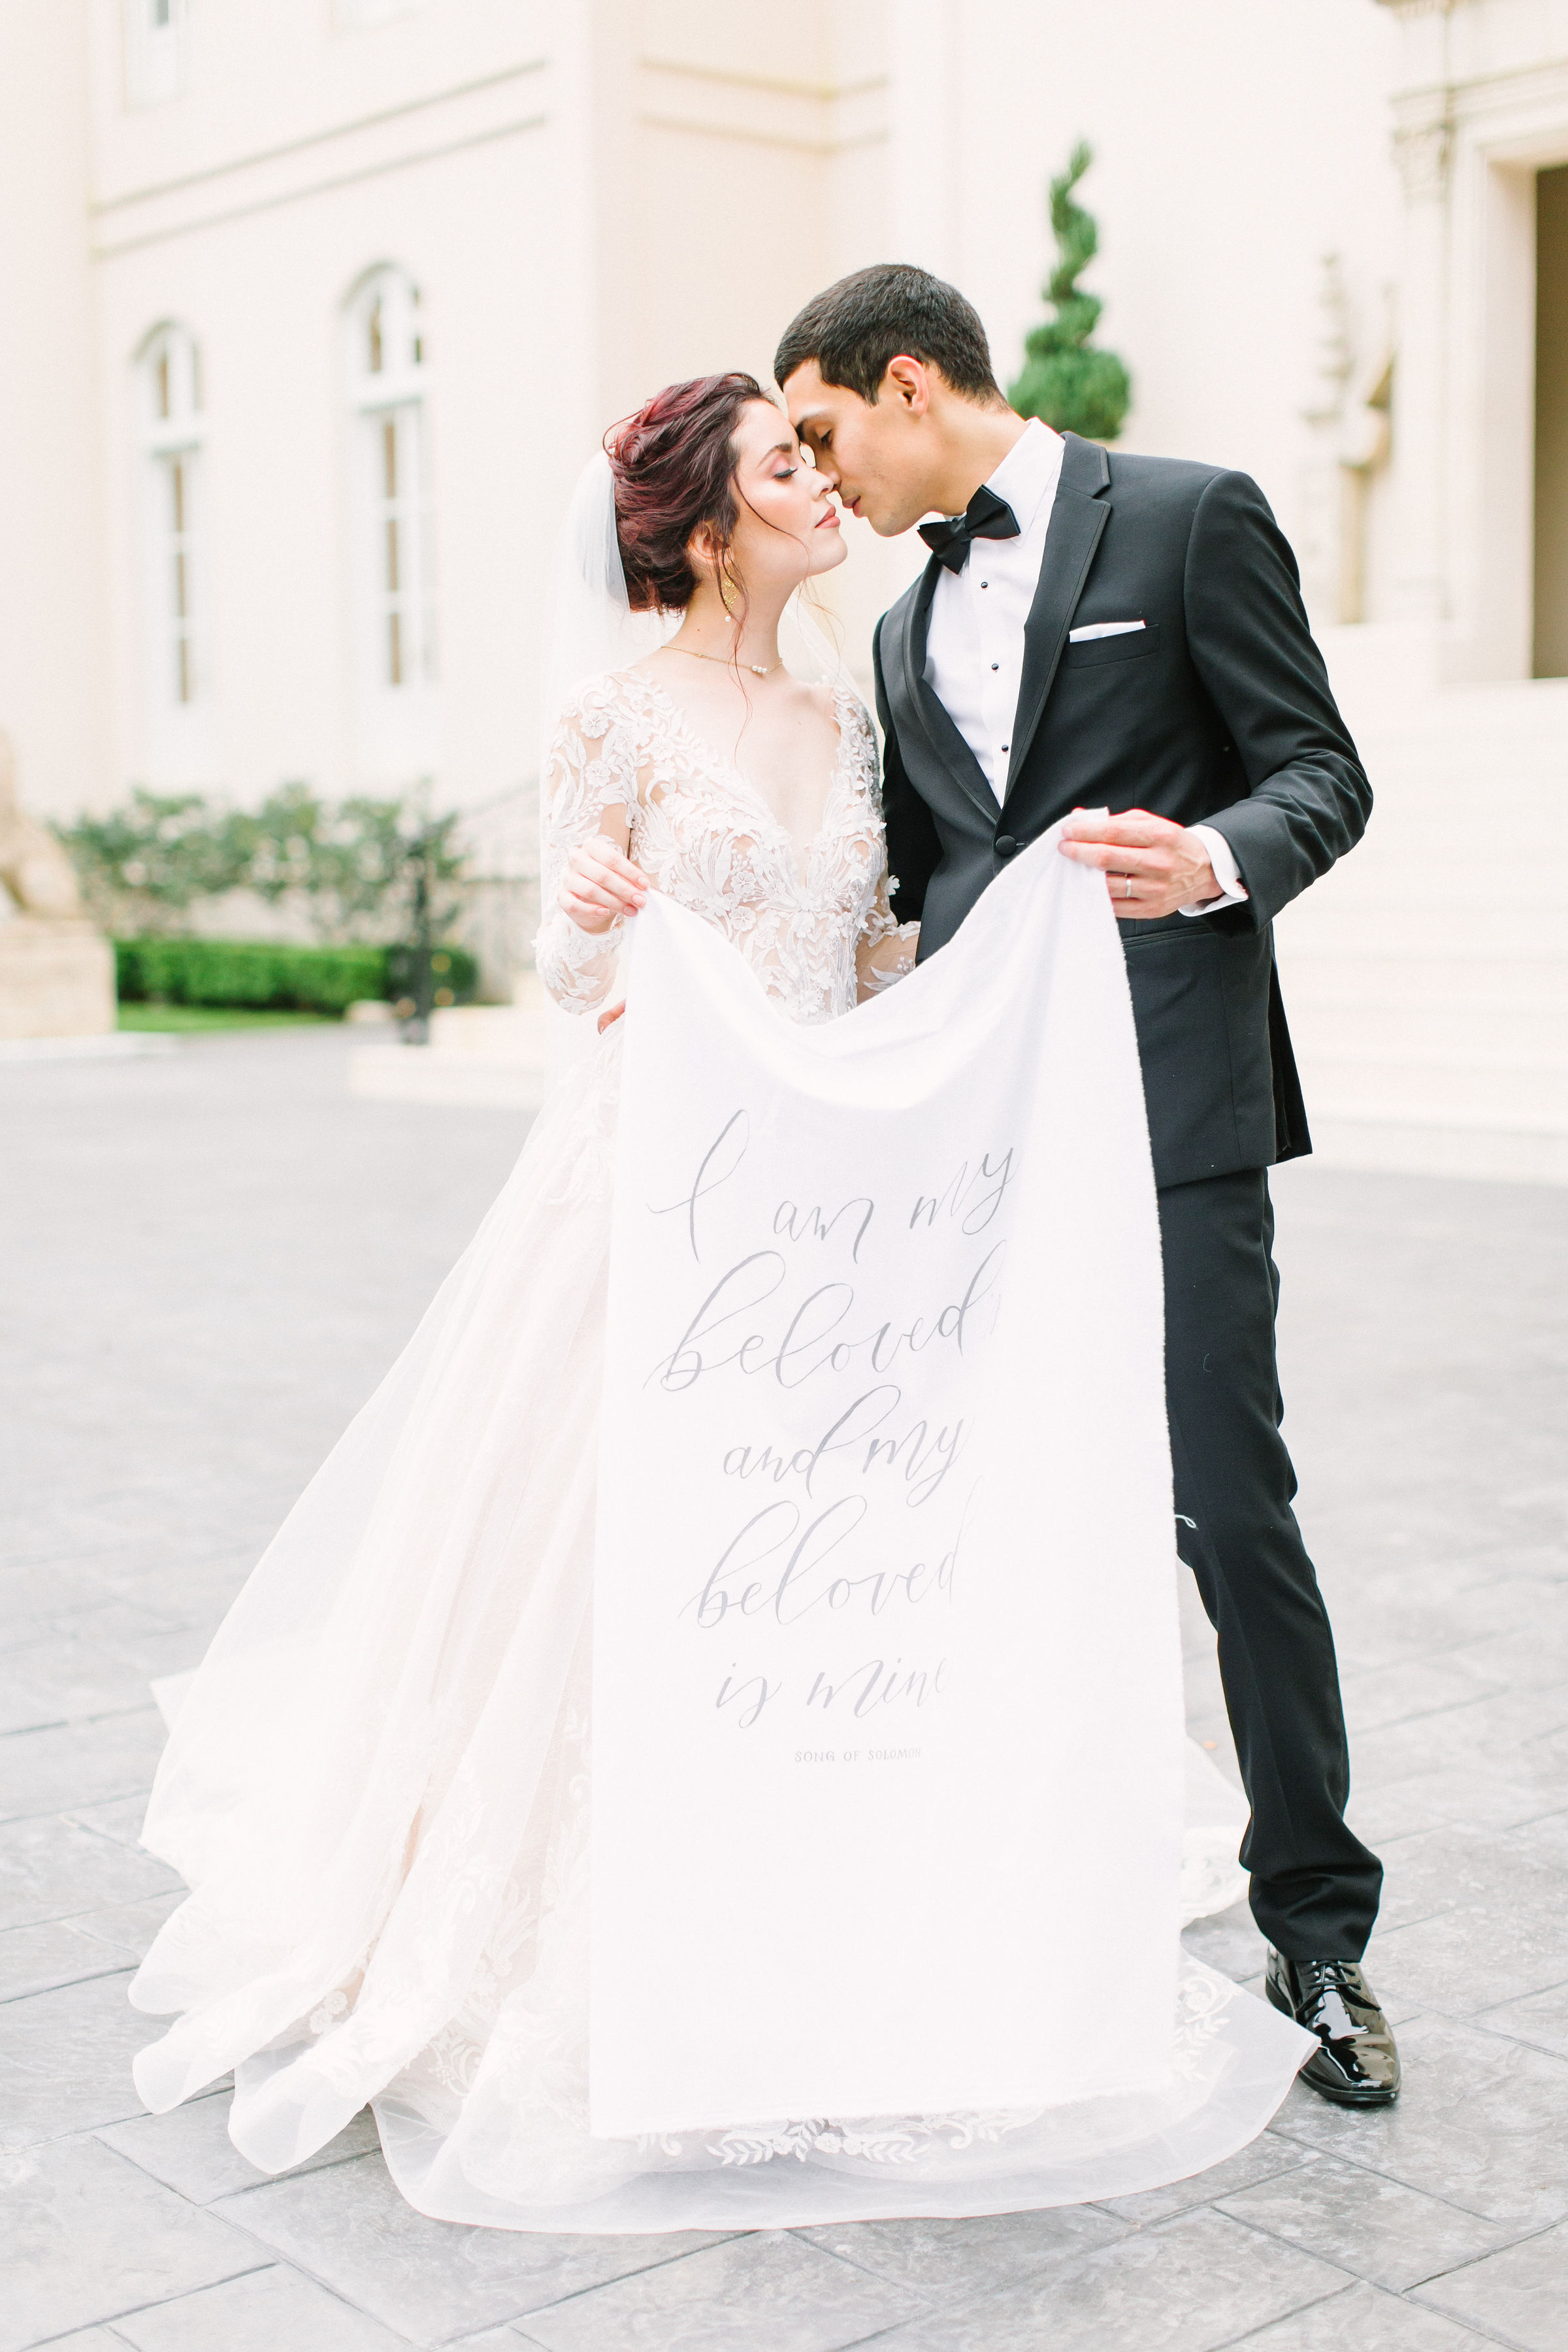 Fine Art Wedding Fabric Banner Calligraphy by Caitlin O'Bryant Design. Photo by Kate Elizabeth Photography.